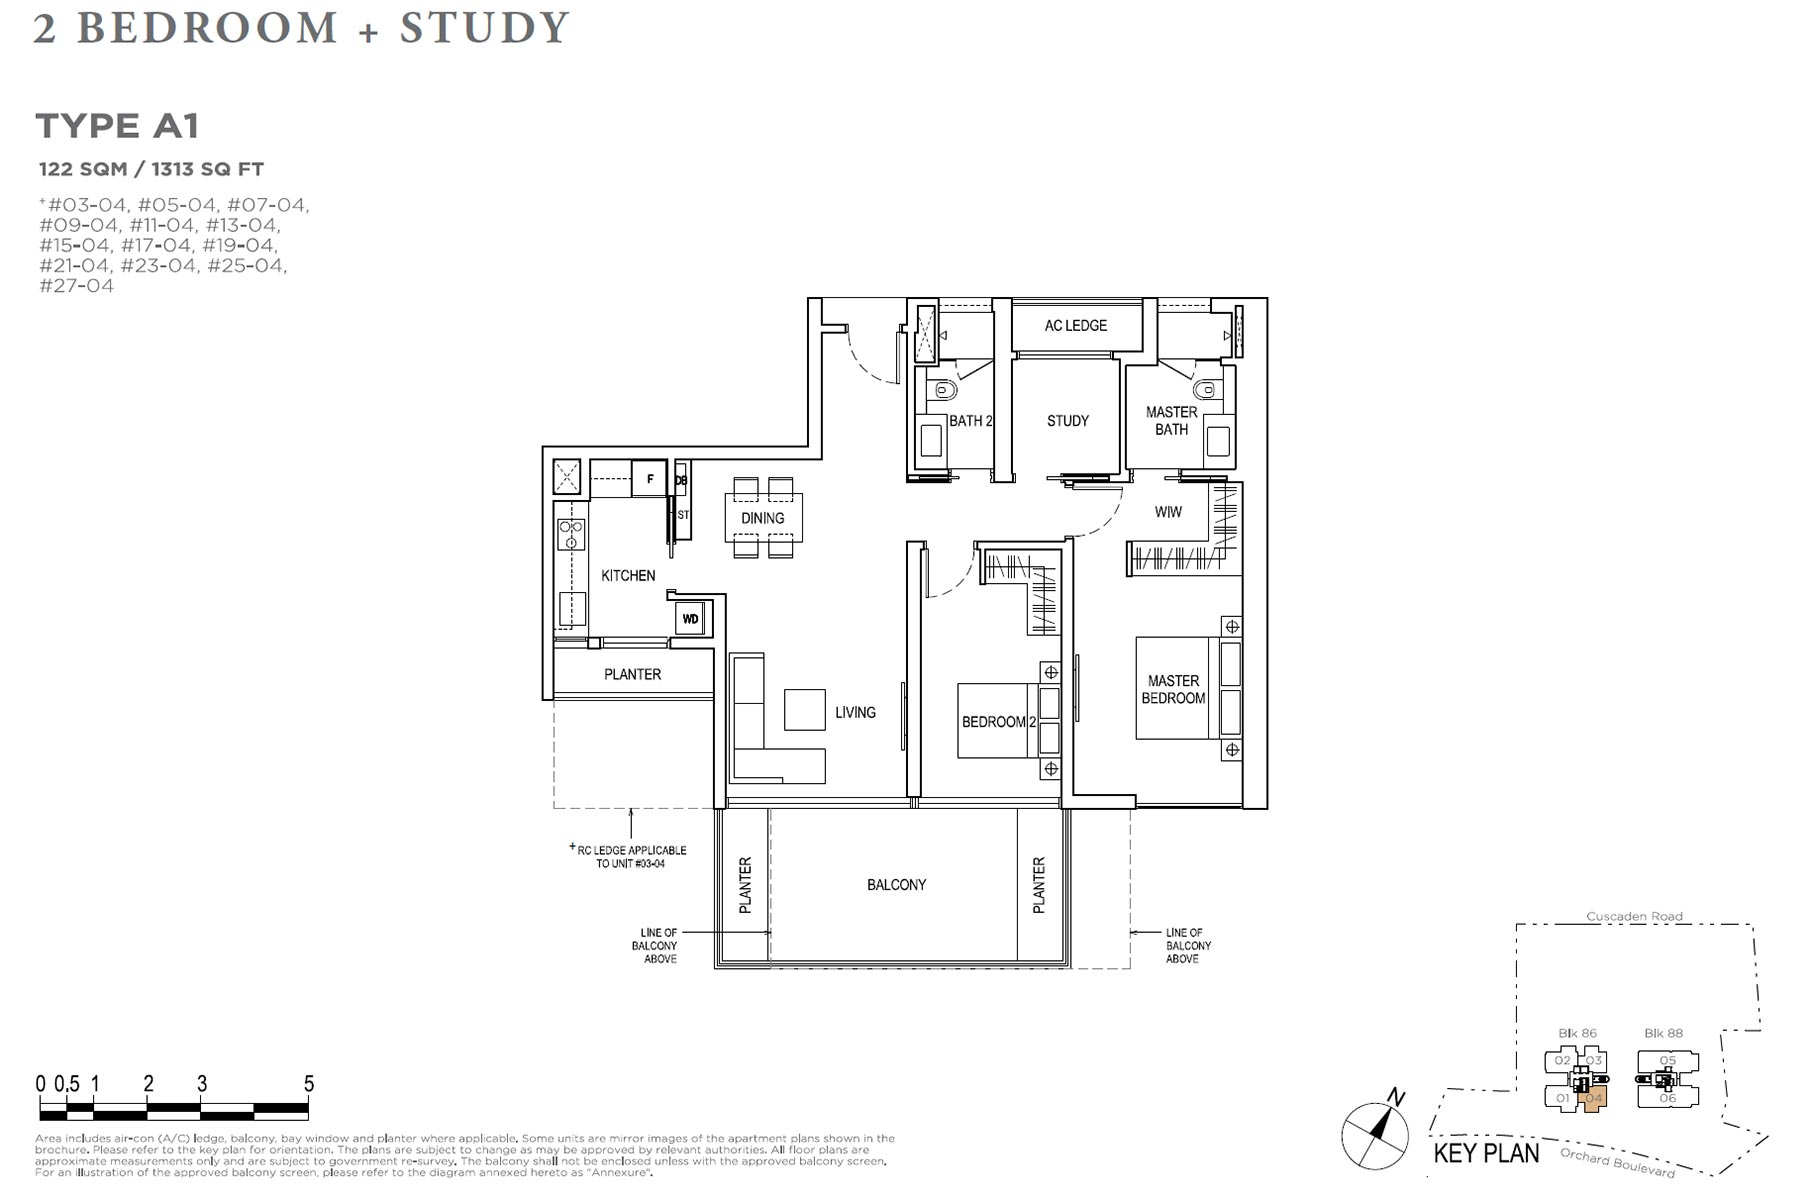 Boulevard 88 2 Bedroom + Study - Type A1